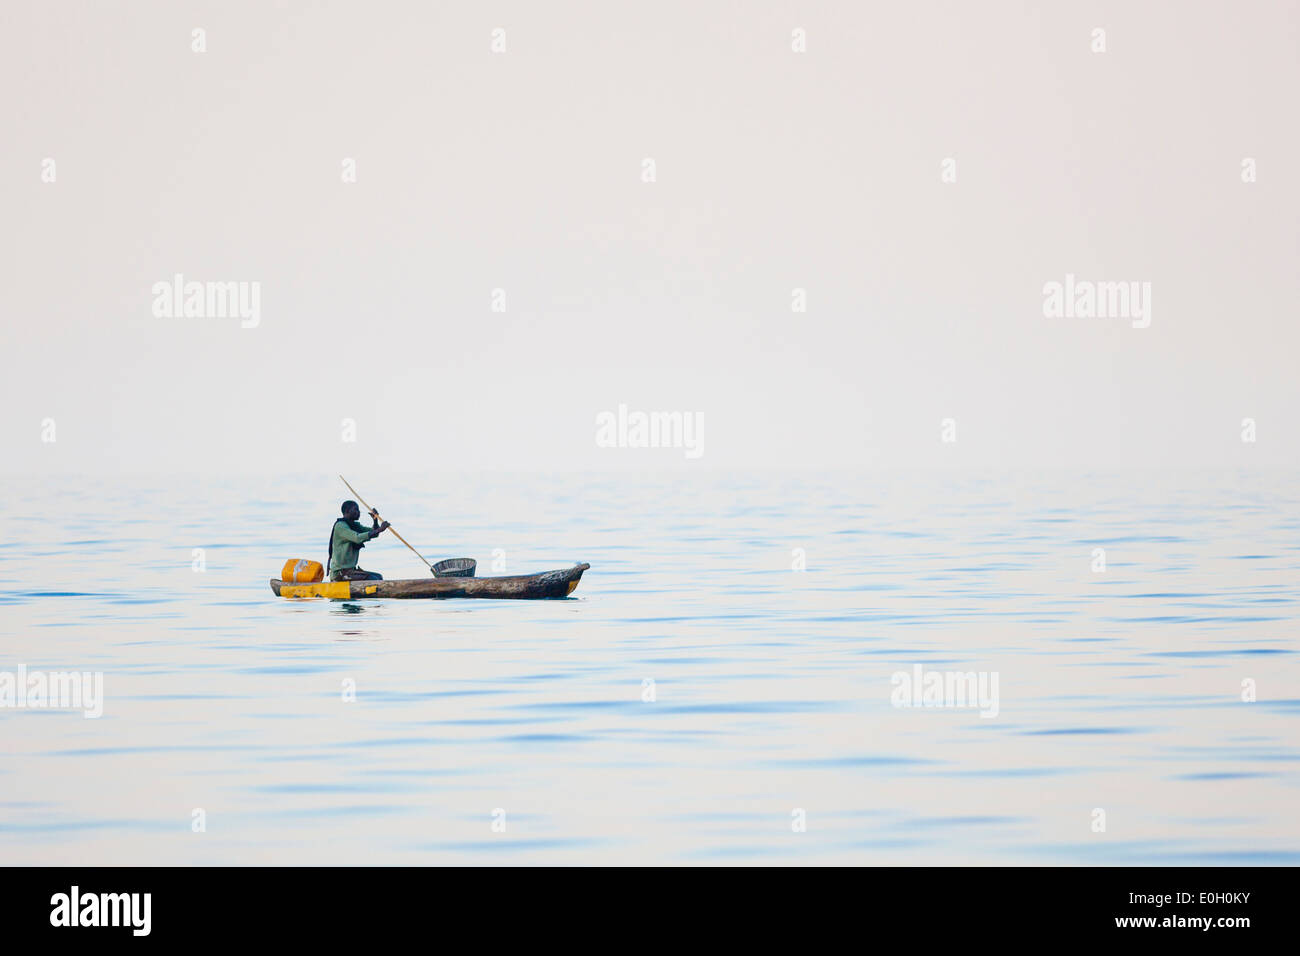 A man in a Dugout, a wooden canoe on Lake Malawi, Malawi, Africa - Stock Image